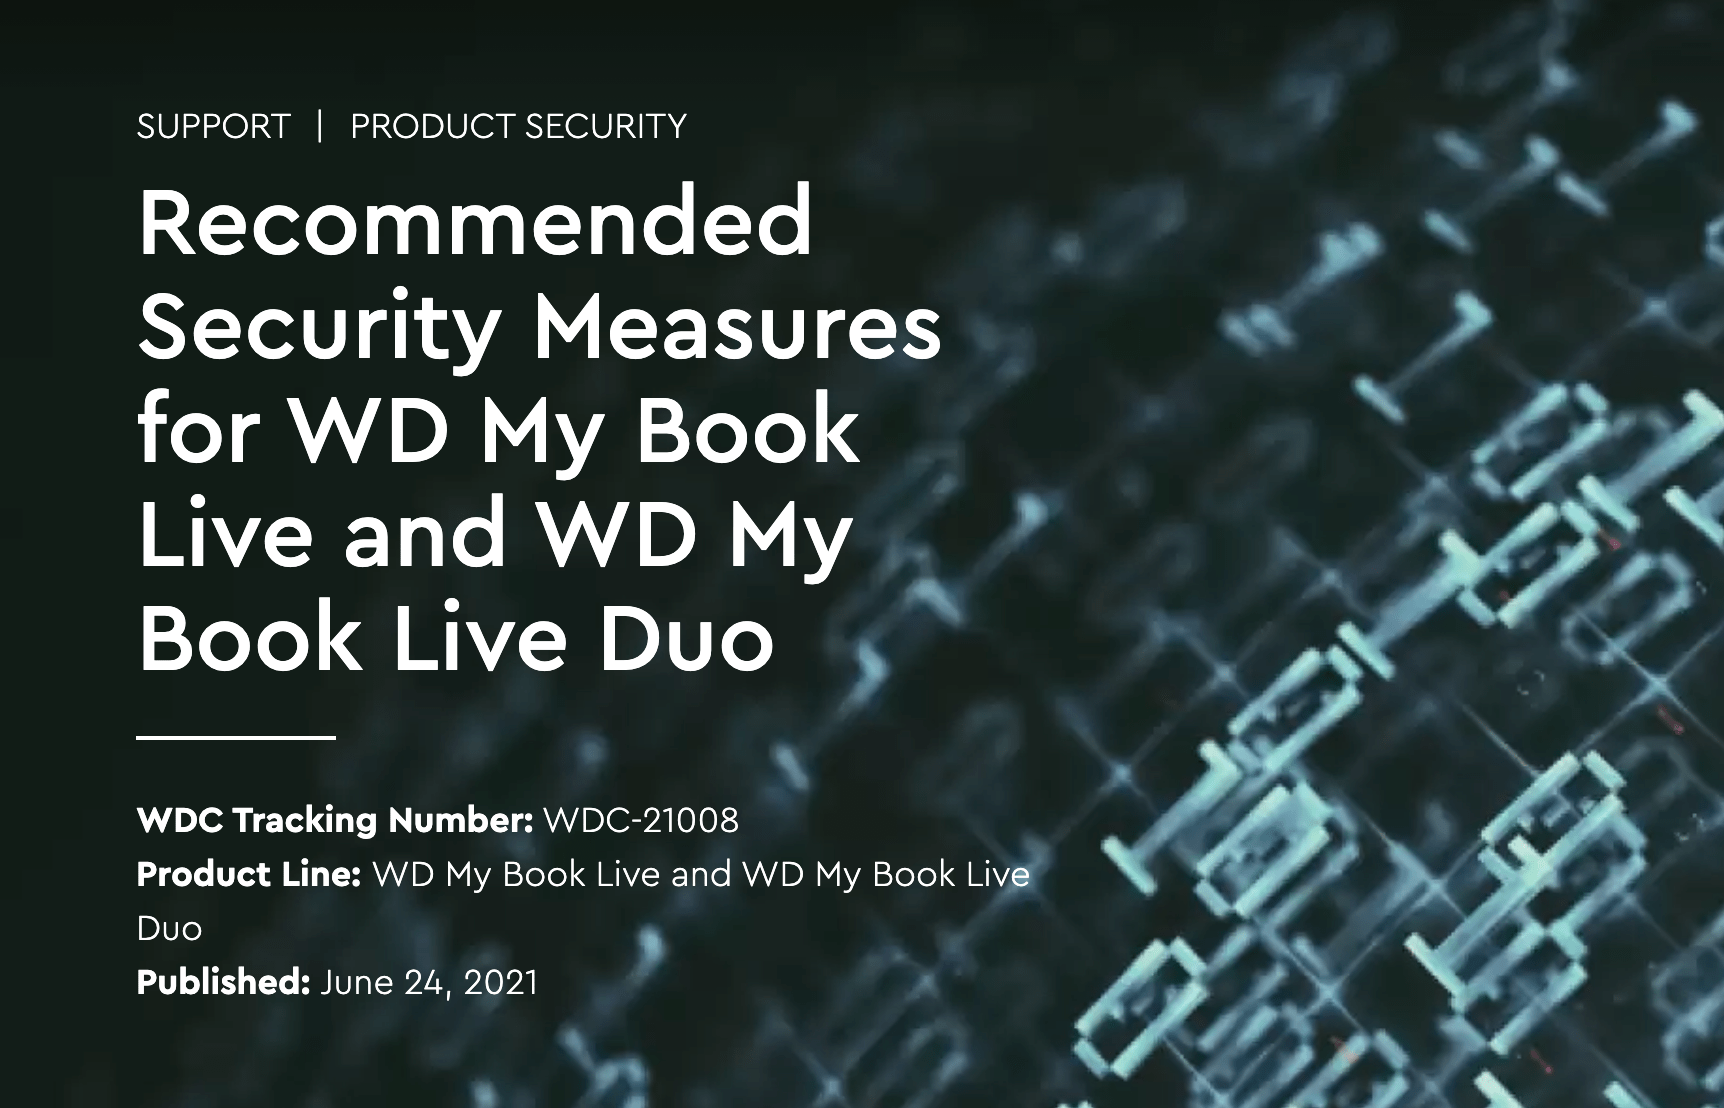 WD My Book Live Security